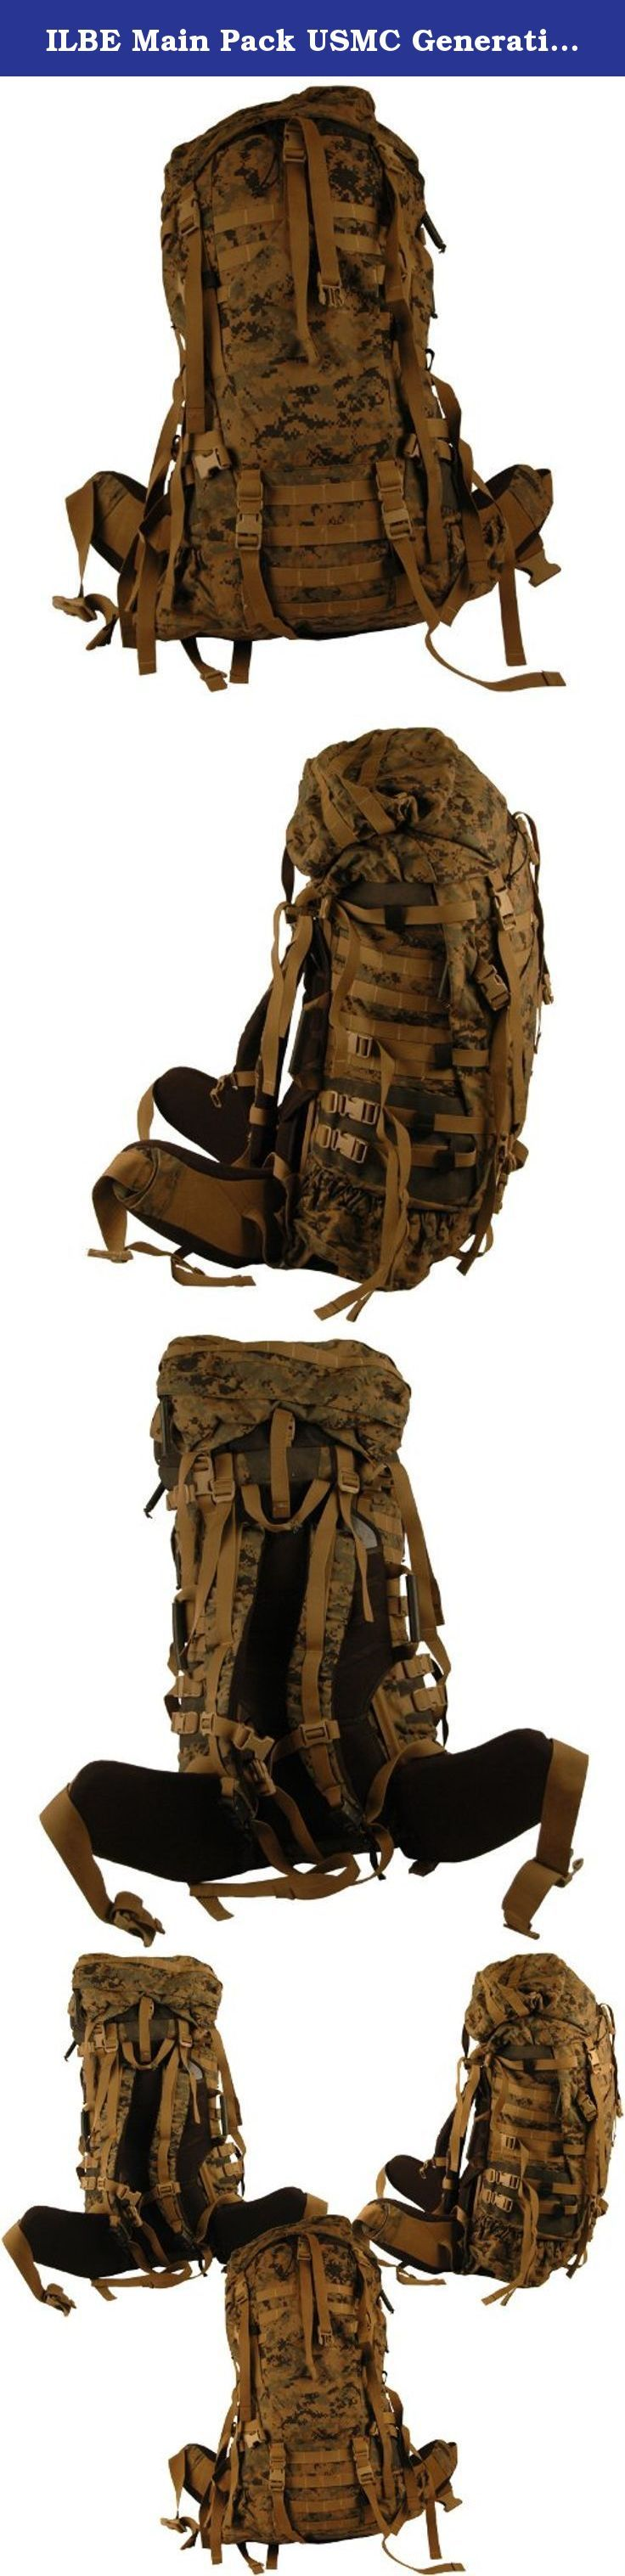 ILBE Main Pack USMC Generation 1. INCLUDES: MAIN RUCKSACK; SHOULDER STRAPS; HIP BELT; LID; AND RADIO POUCH VERY GOOD - Buckles may be scratched/scuffed from storage. May have small pin holes or minute tears that can be easily repaired with a needle and thread. Straps may have tape residue from storage. This item would be considered new if not for the minor defects. Black Star Surplus takes great pride and makes great efforts to bring our customers the best AUTHENTIC US Surplus on the…